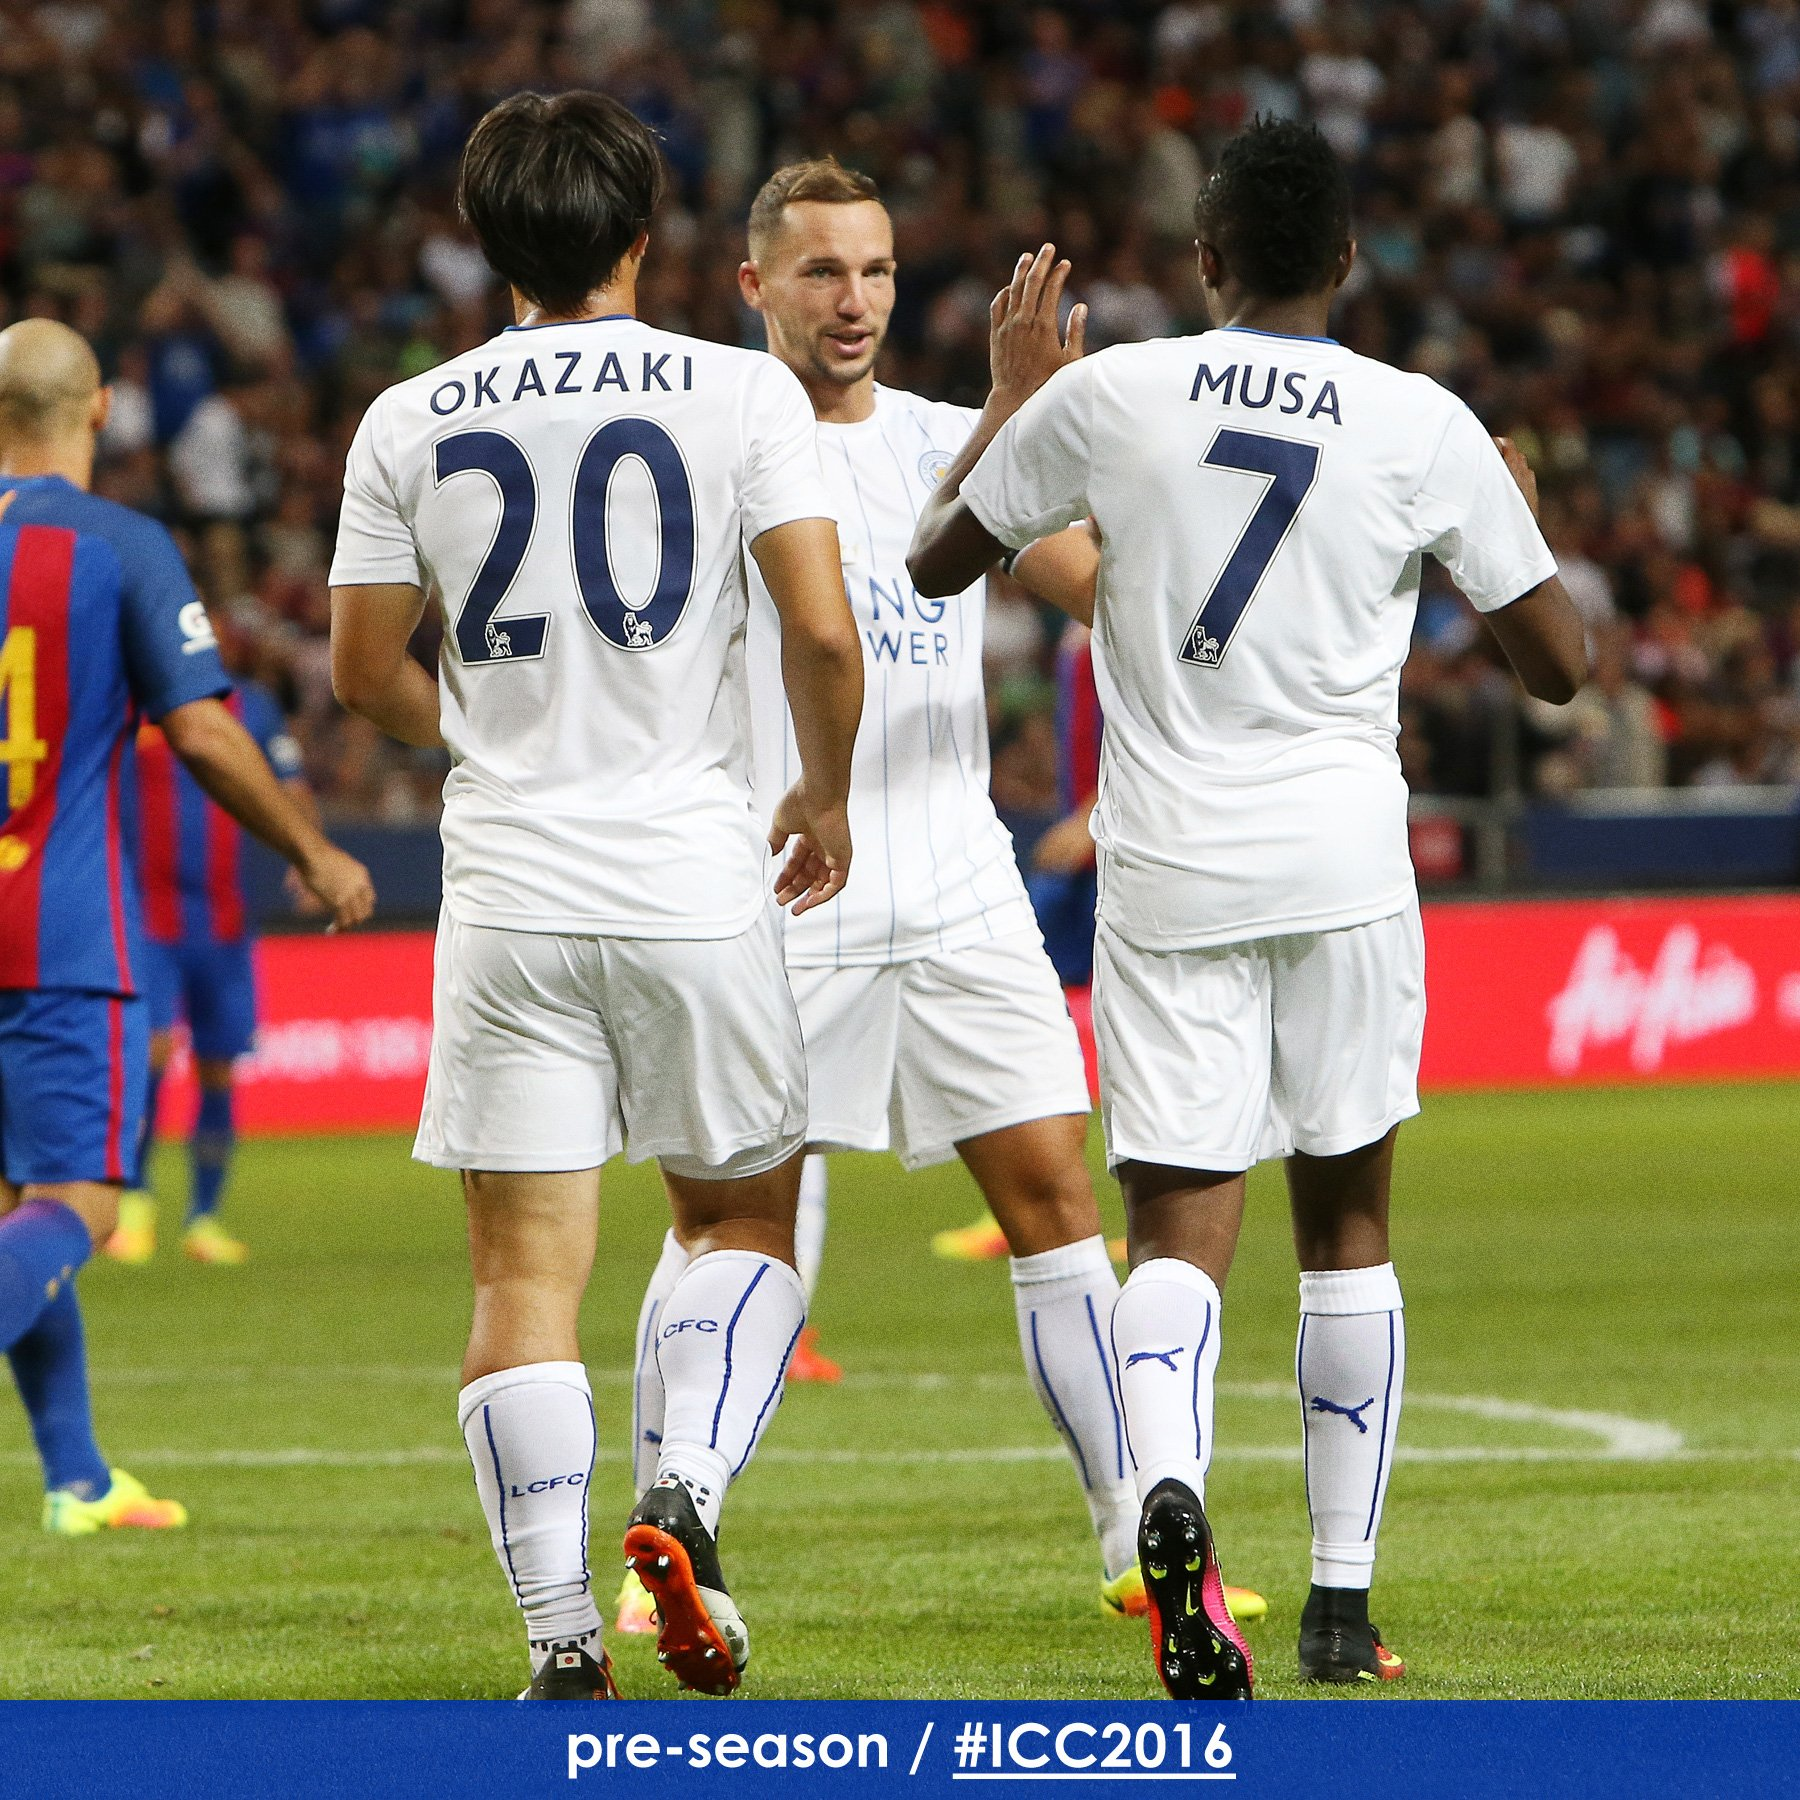 Schmeichel: Musa's Pace Will Trouble EPL Defenders